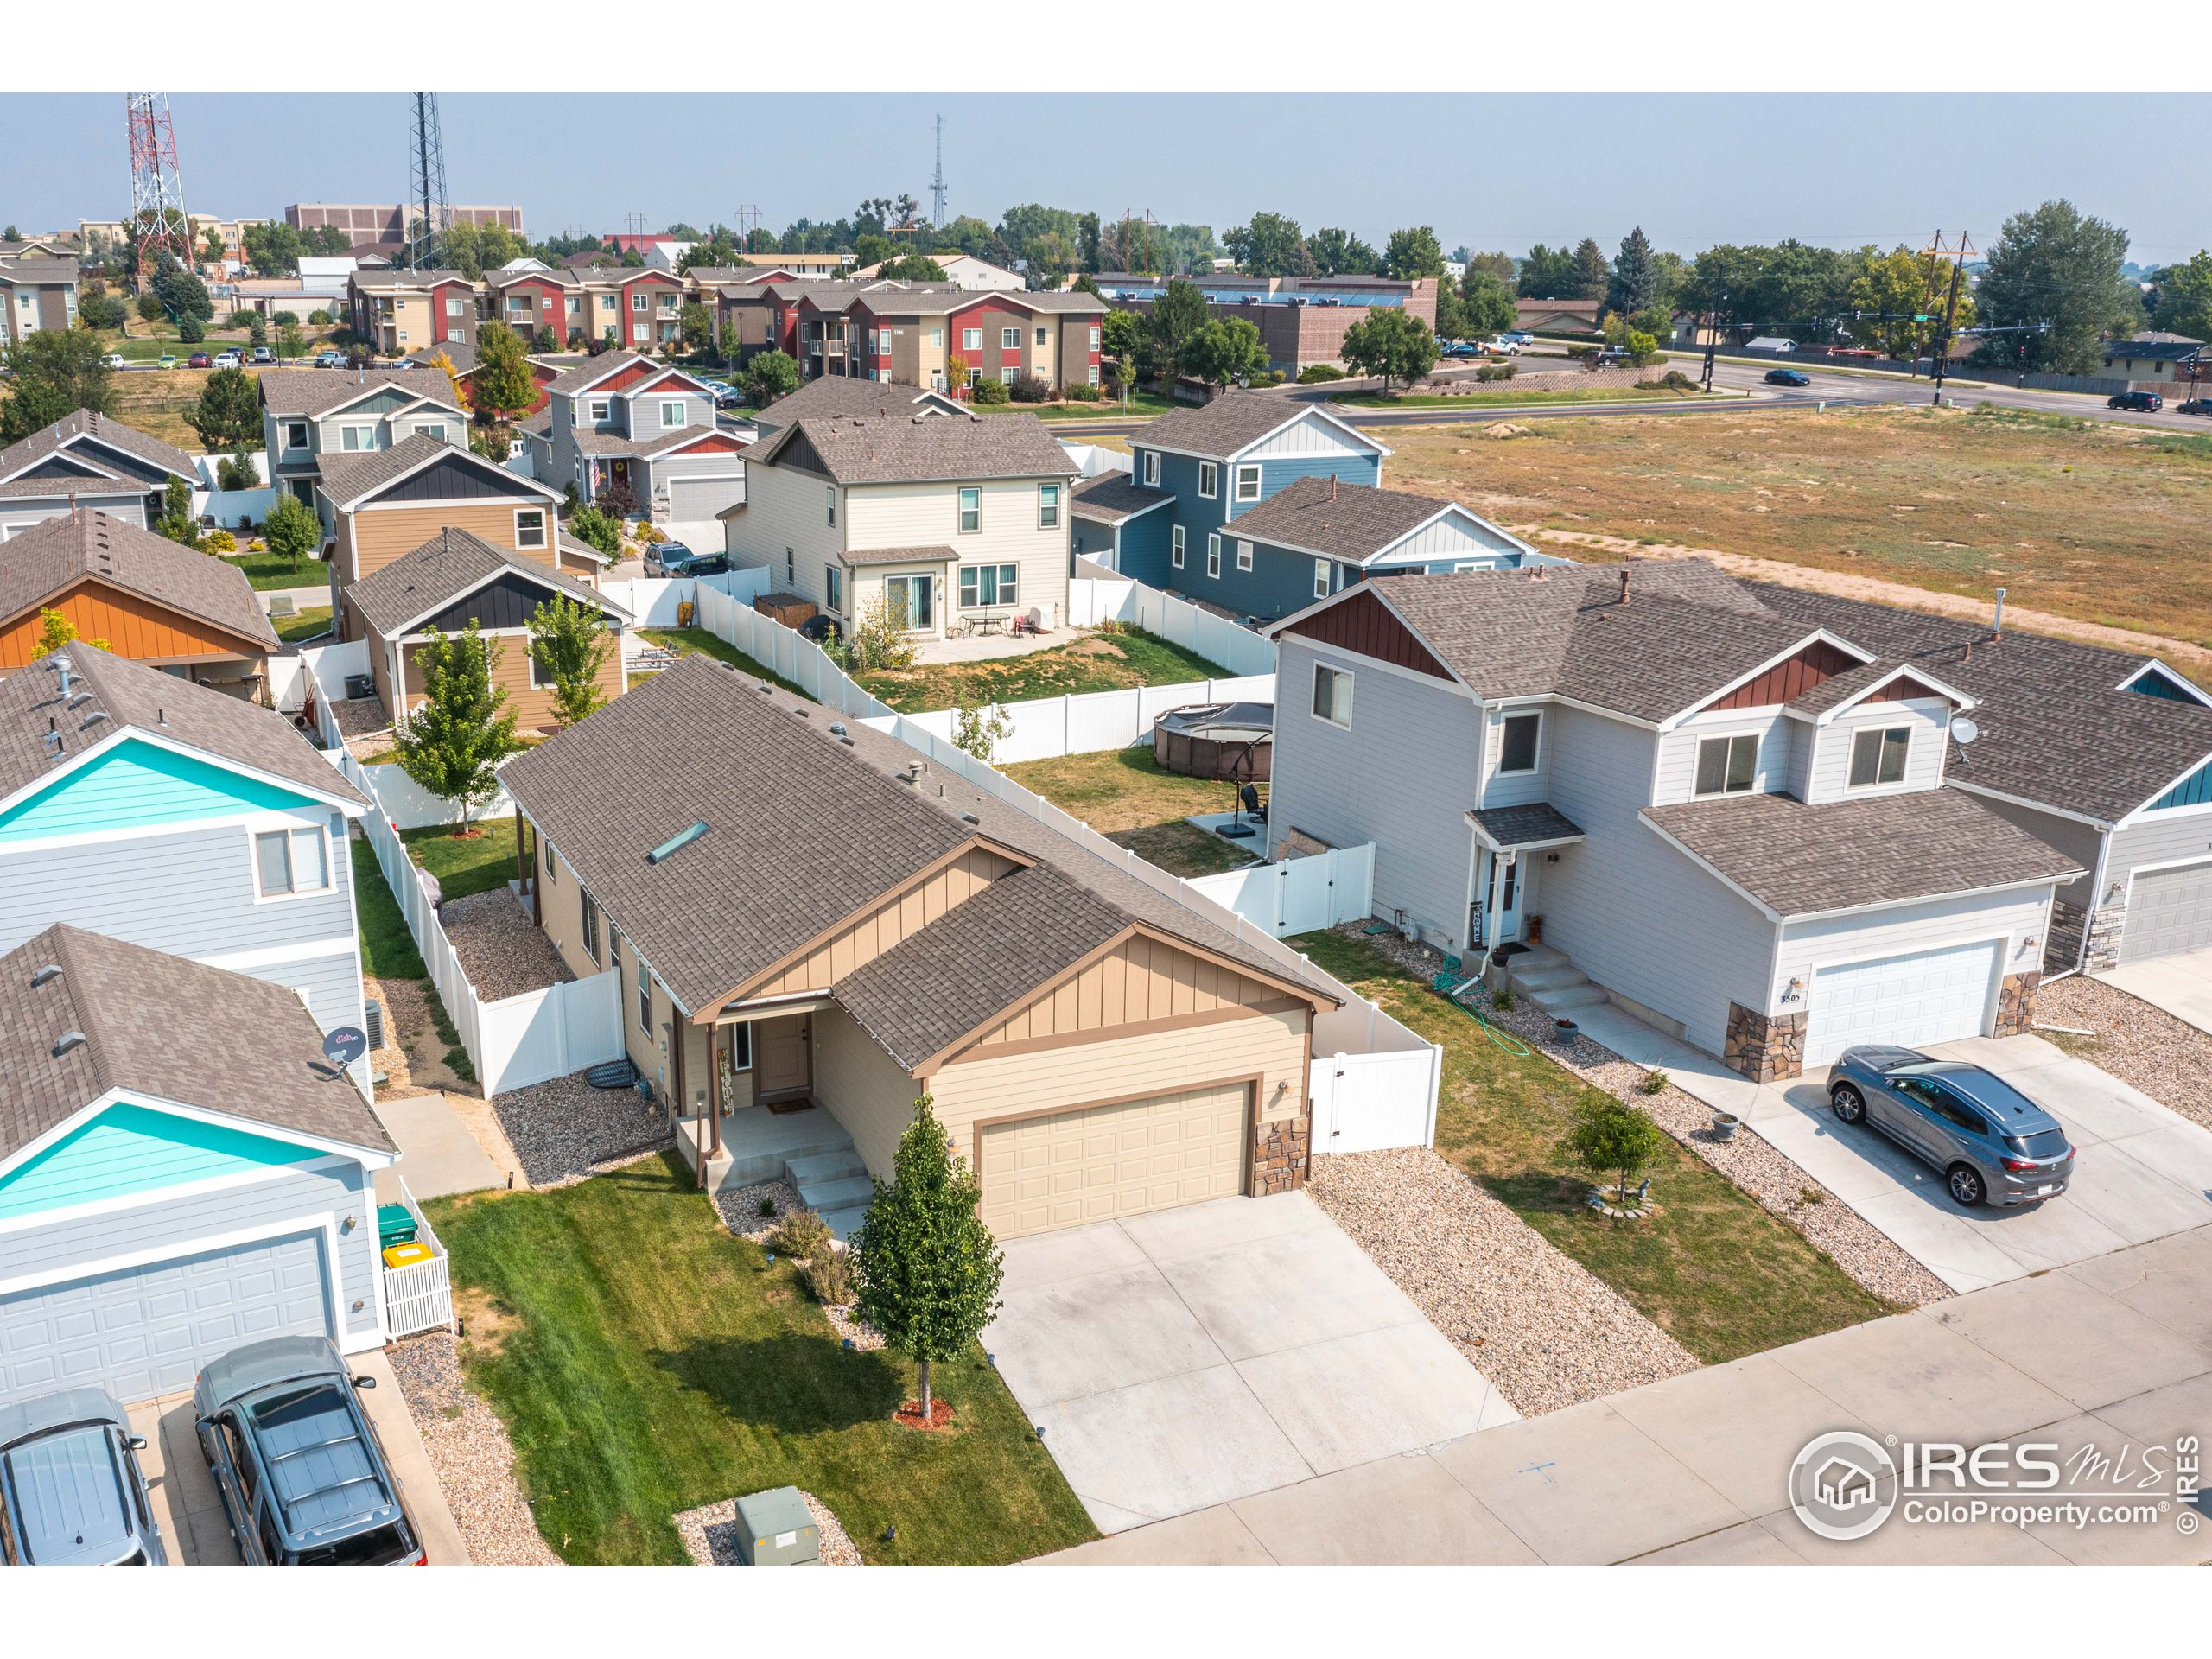 Left Aerial View of Property